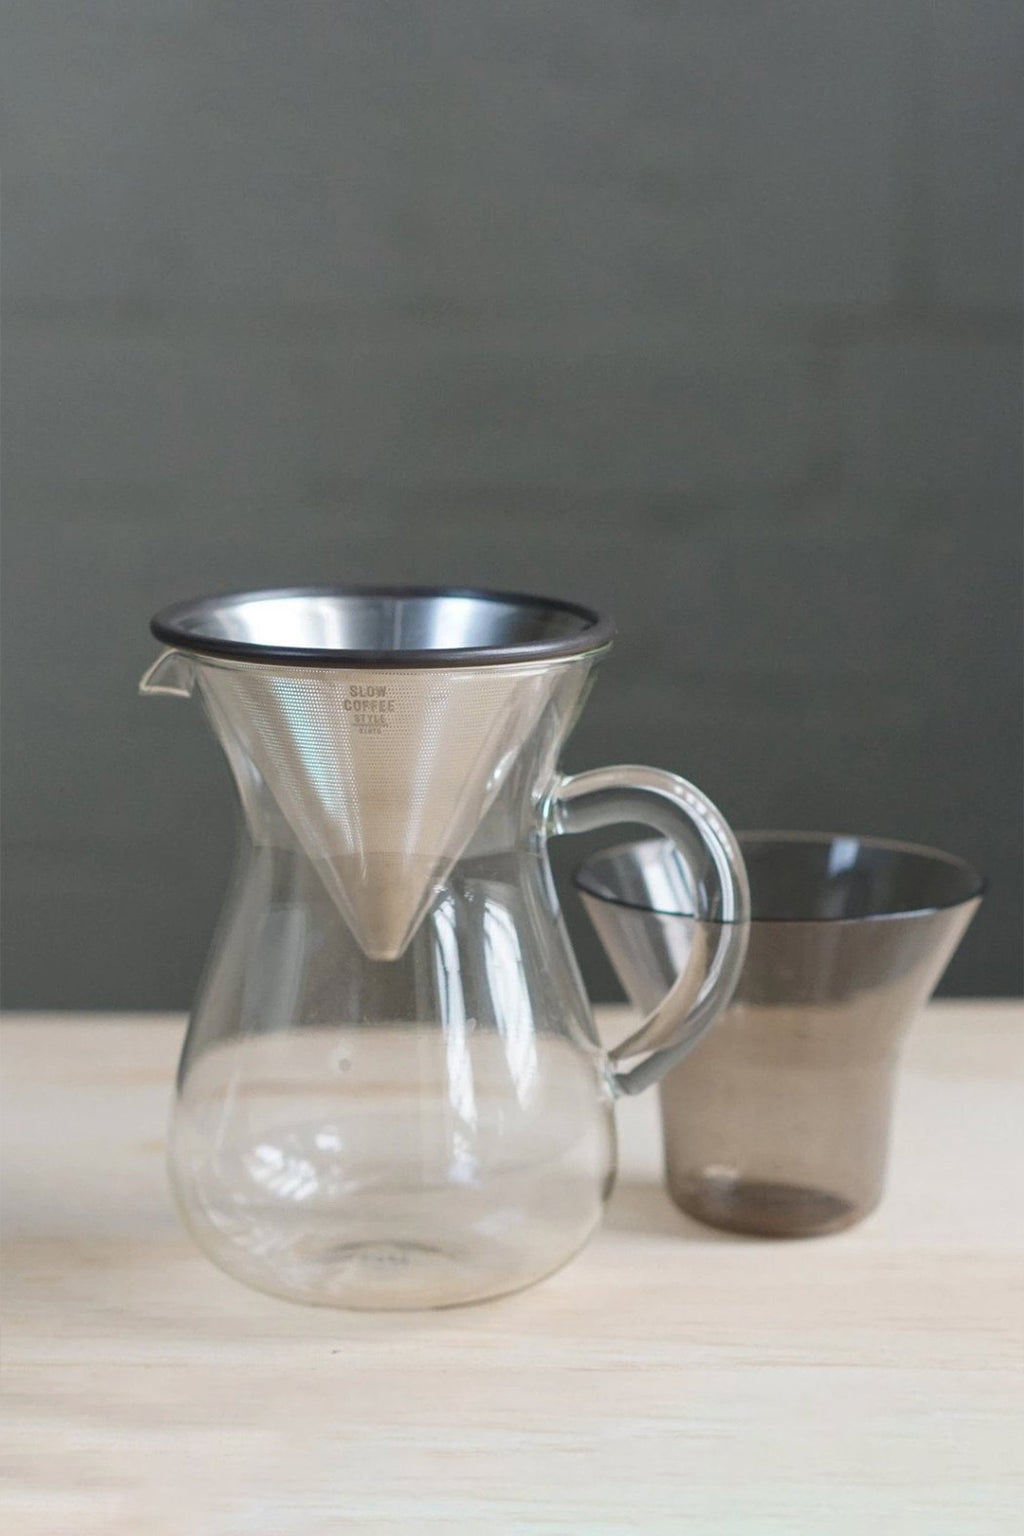 Kinto Stainless Steel + Glass Coffee Carafe Set